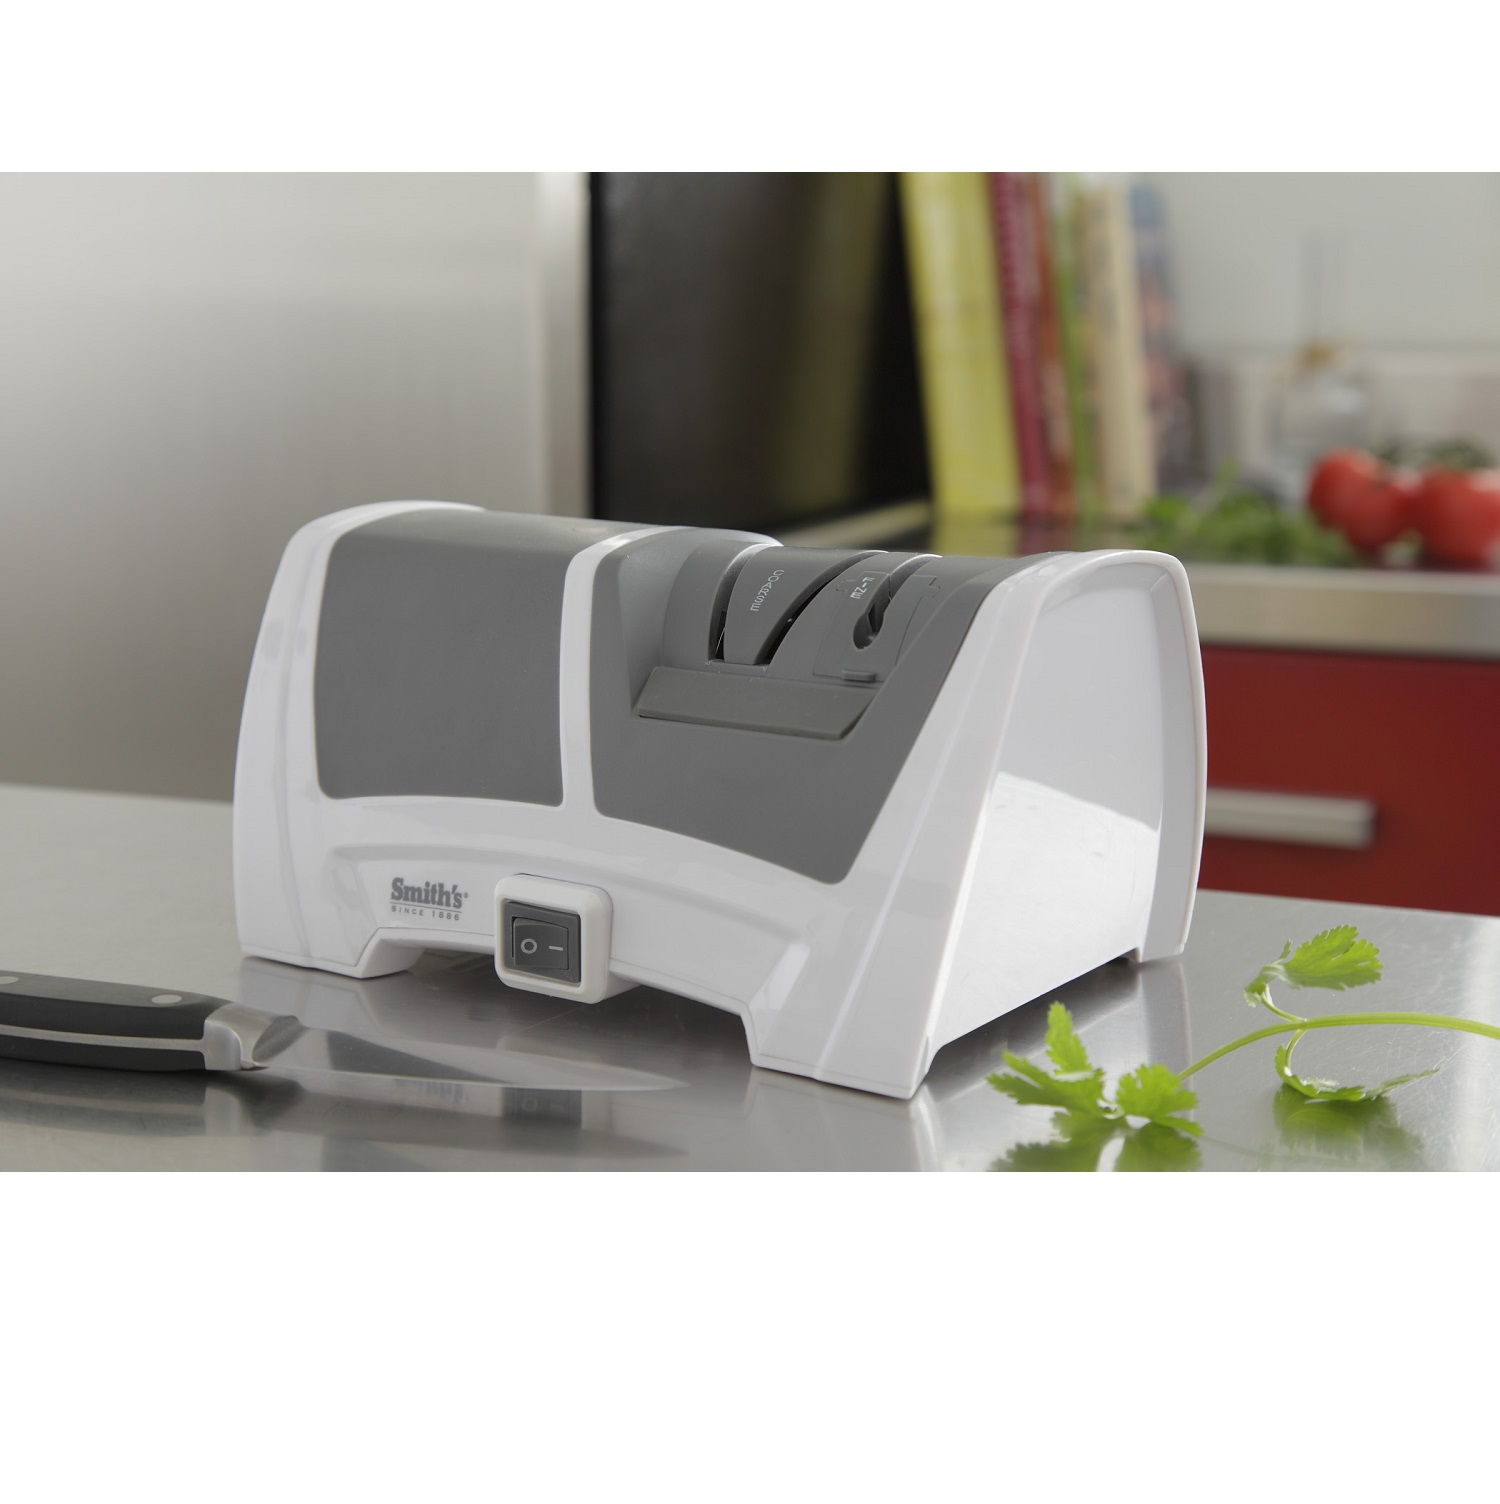 Smith's 2-Stage Electric Knife Sharpener, 1 Each